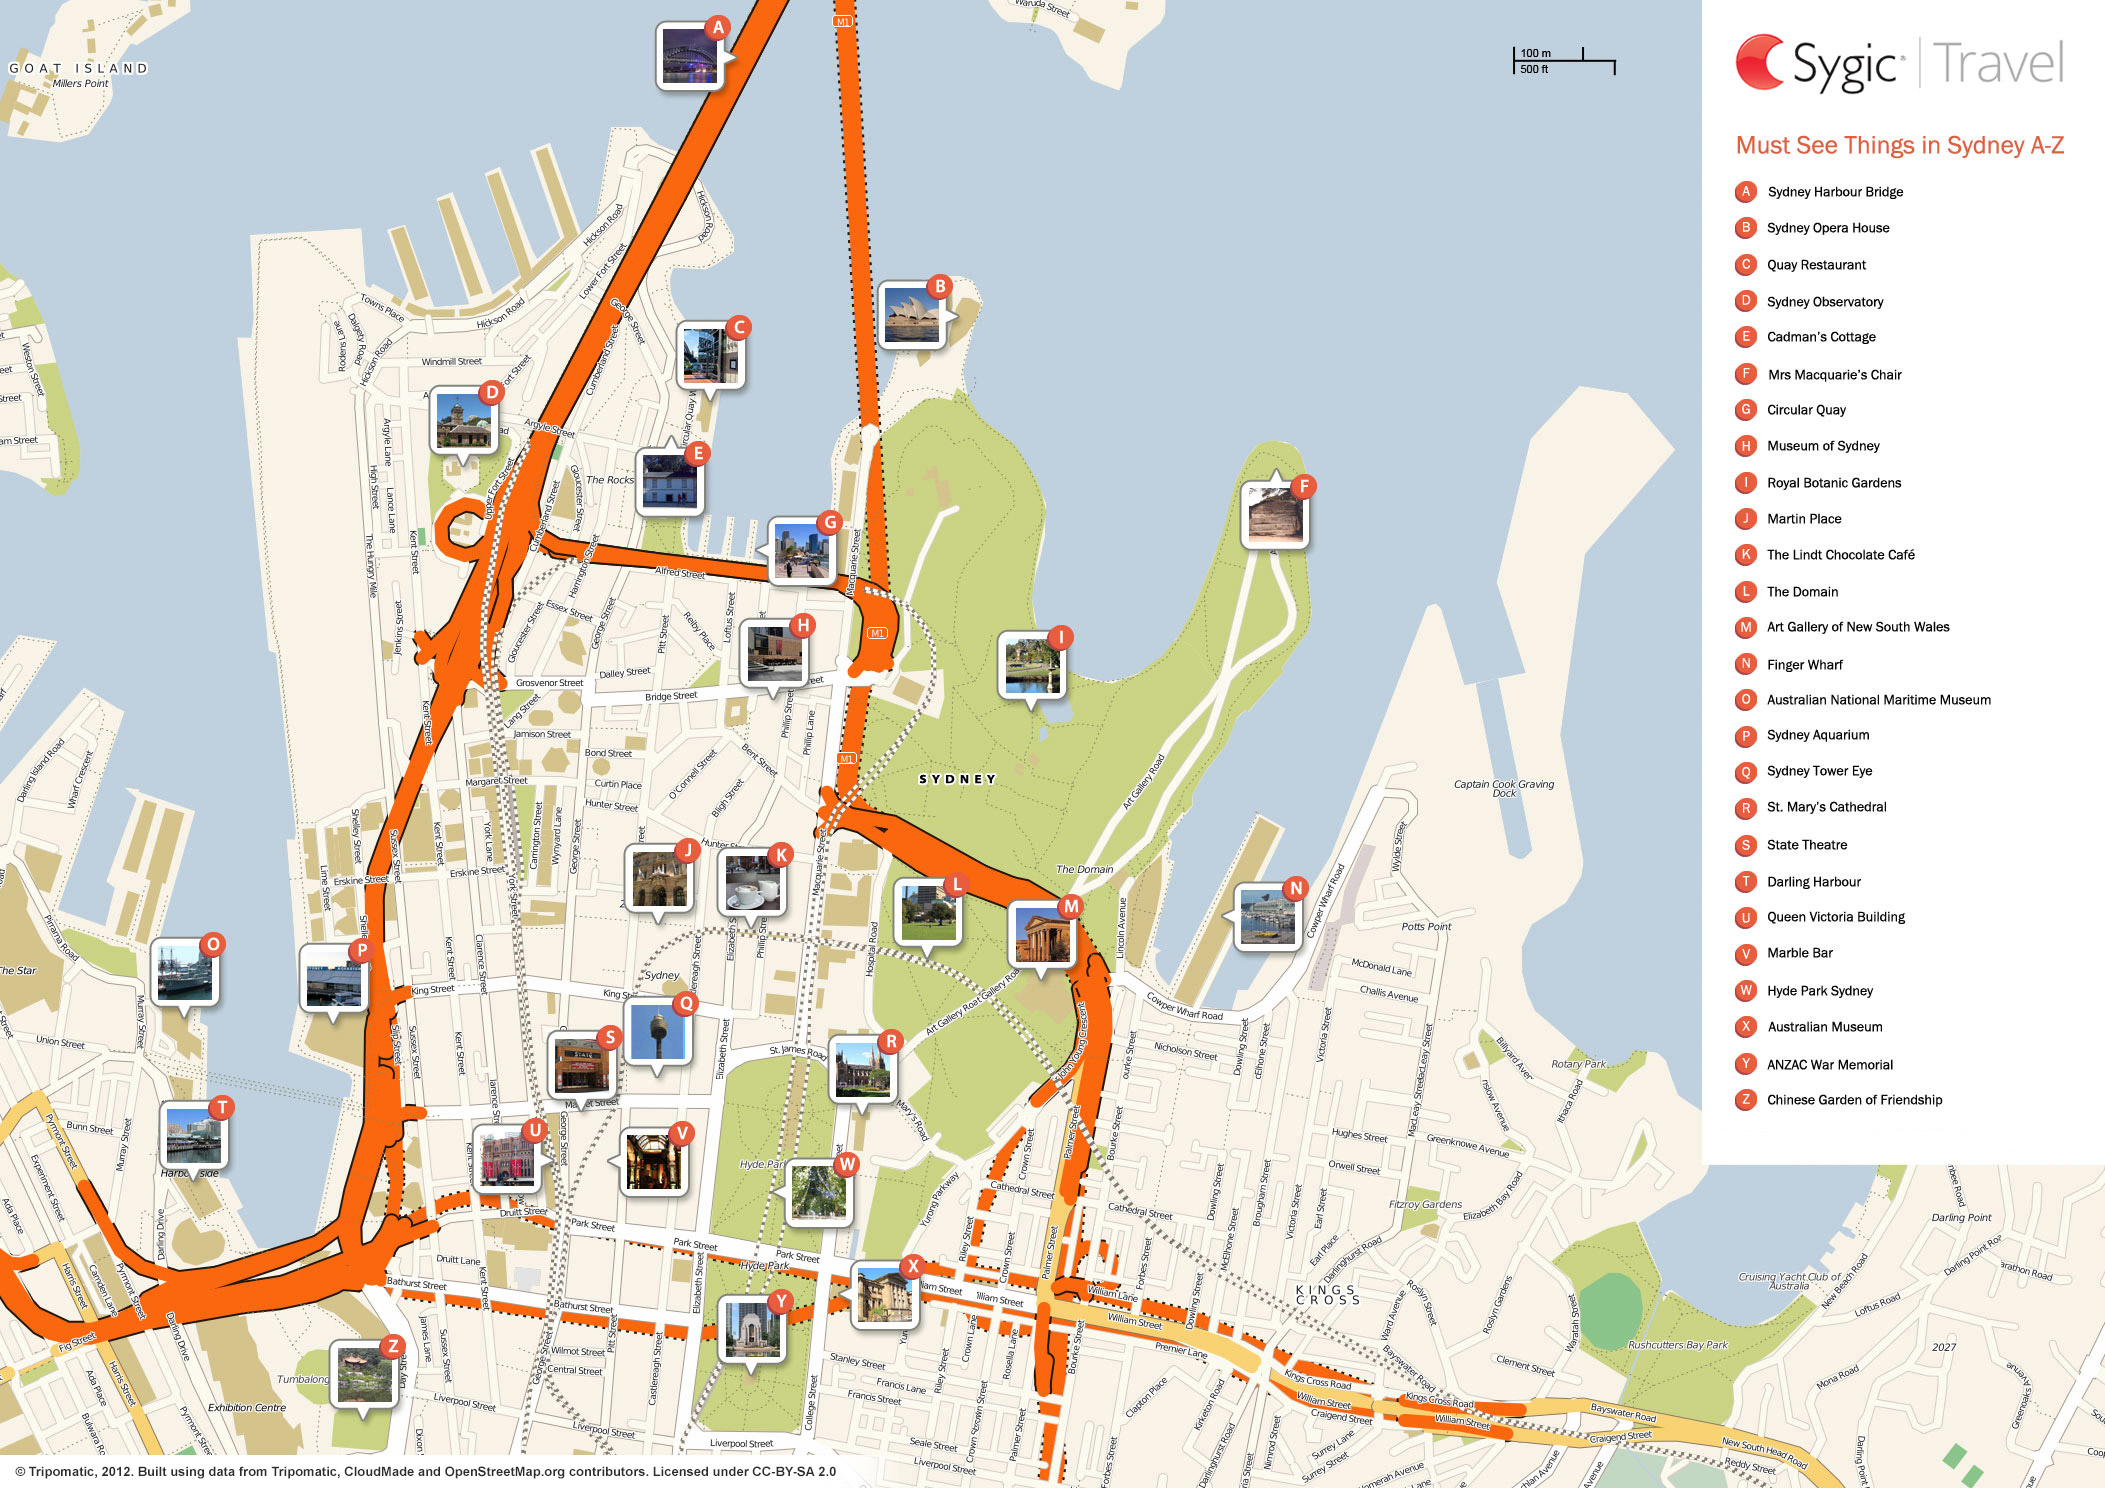 sydney city map tourist pdf to word - photo#6